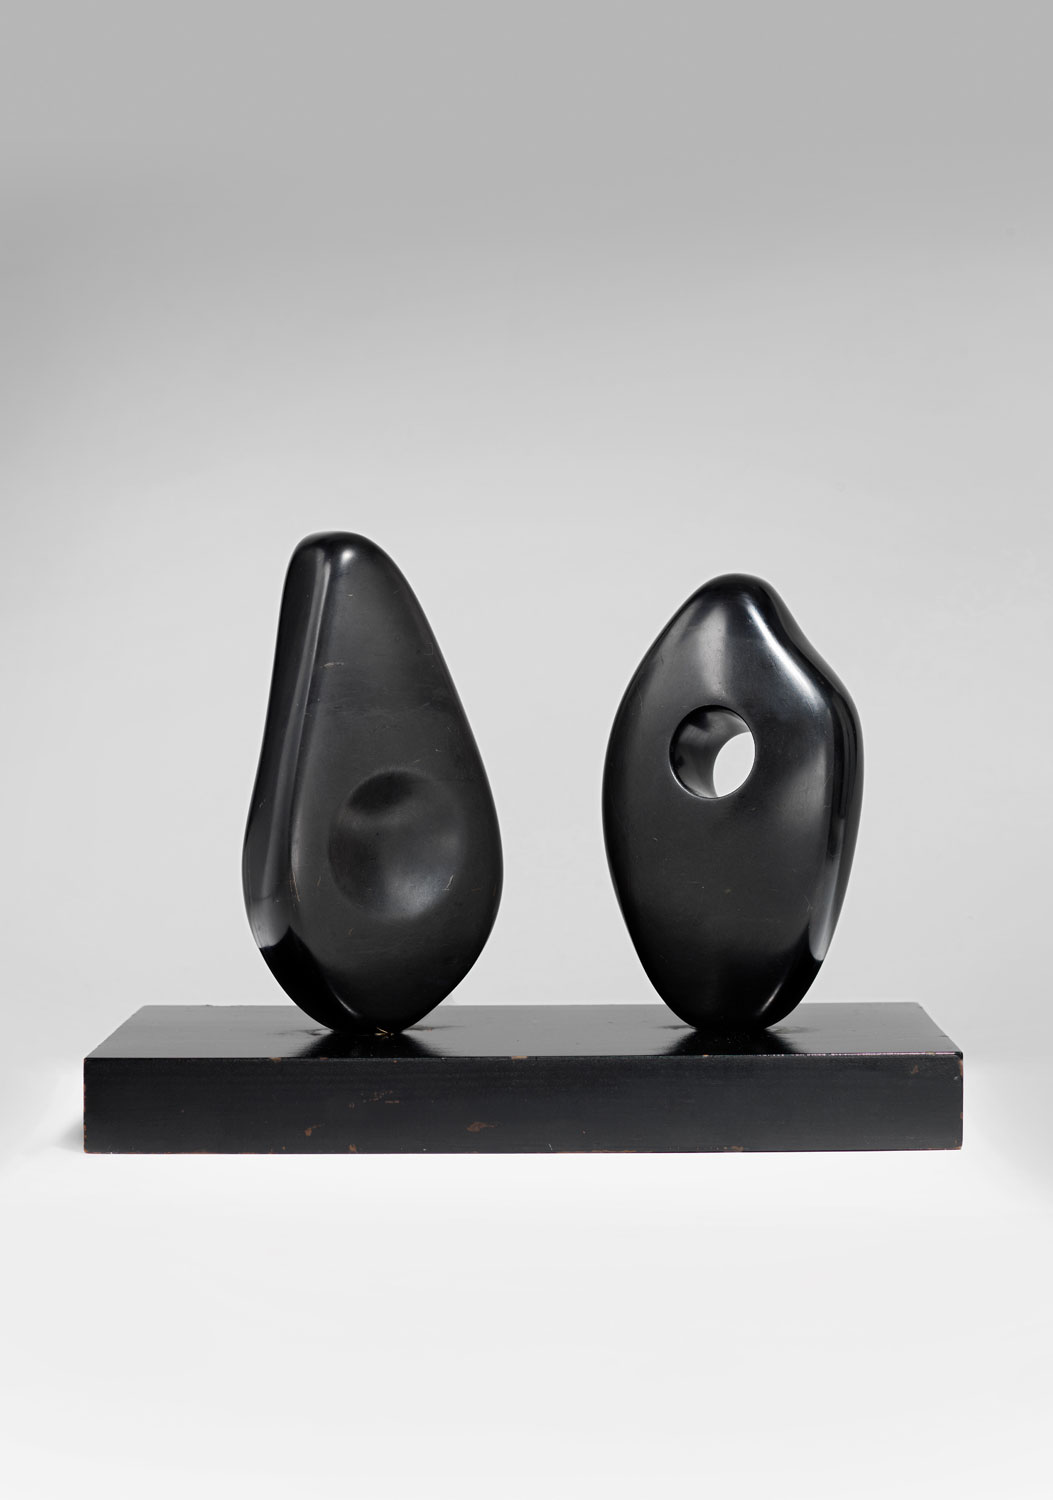 Barbara Hepworth, 'Two Forms (Orkney)' (1967)